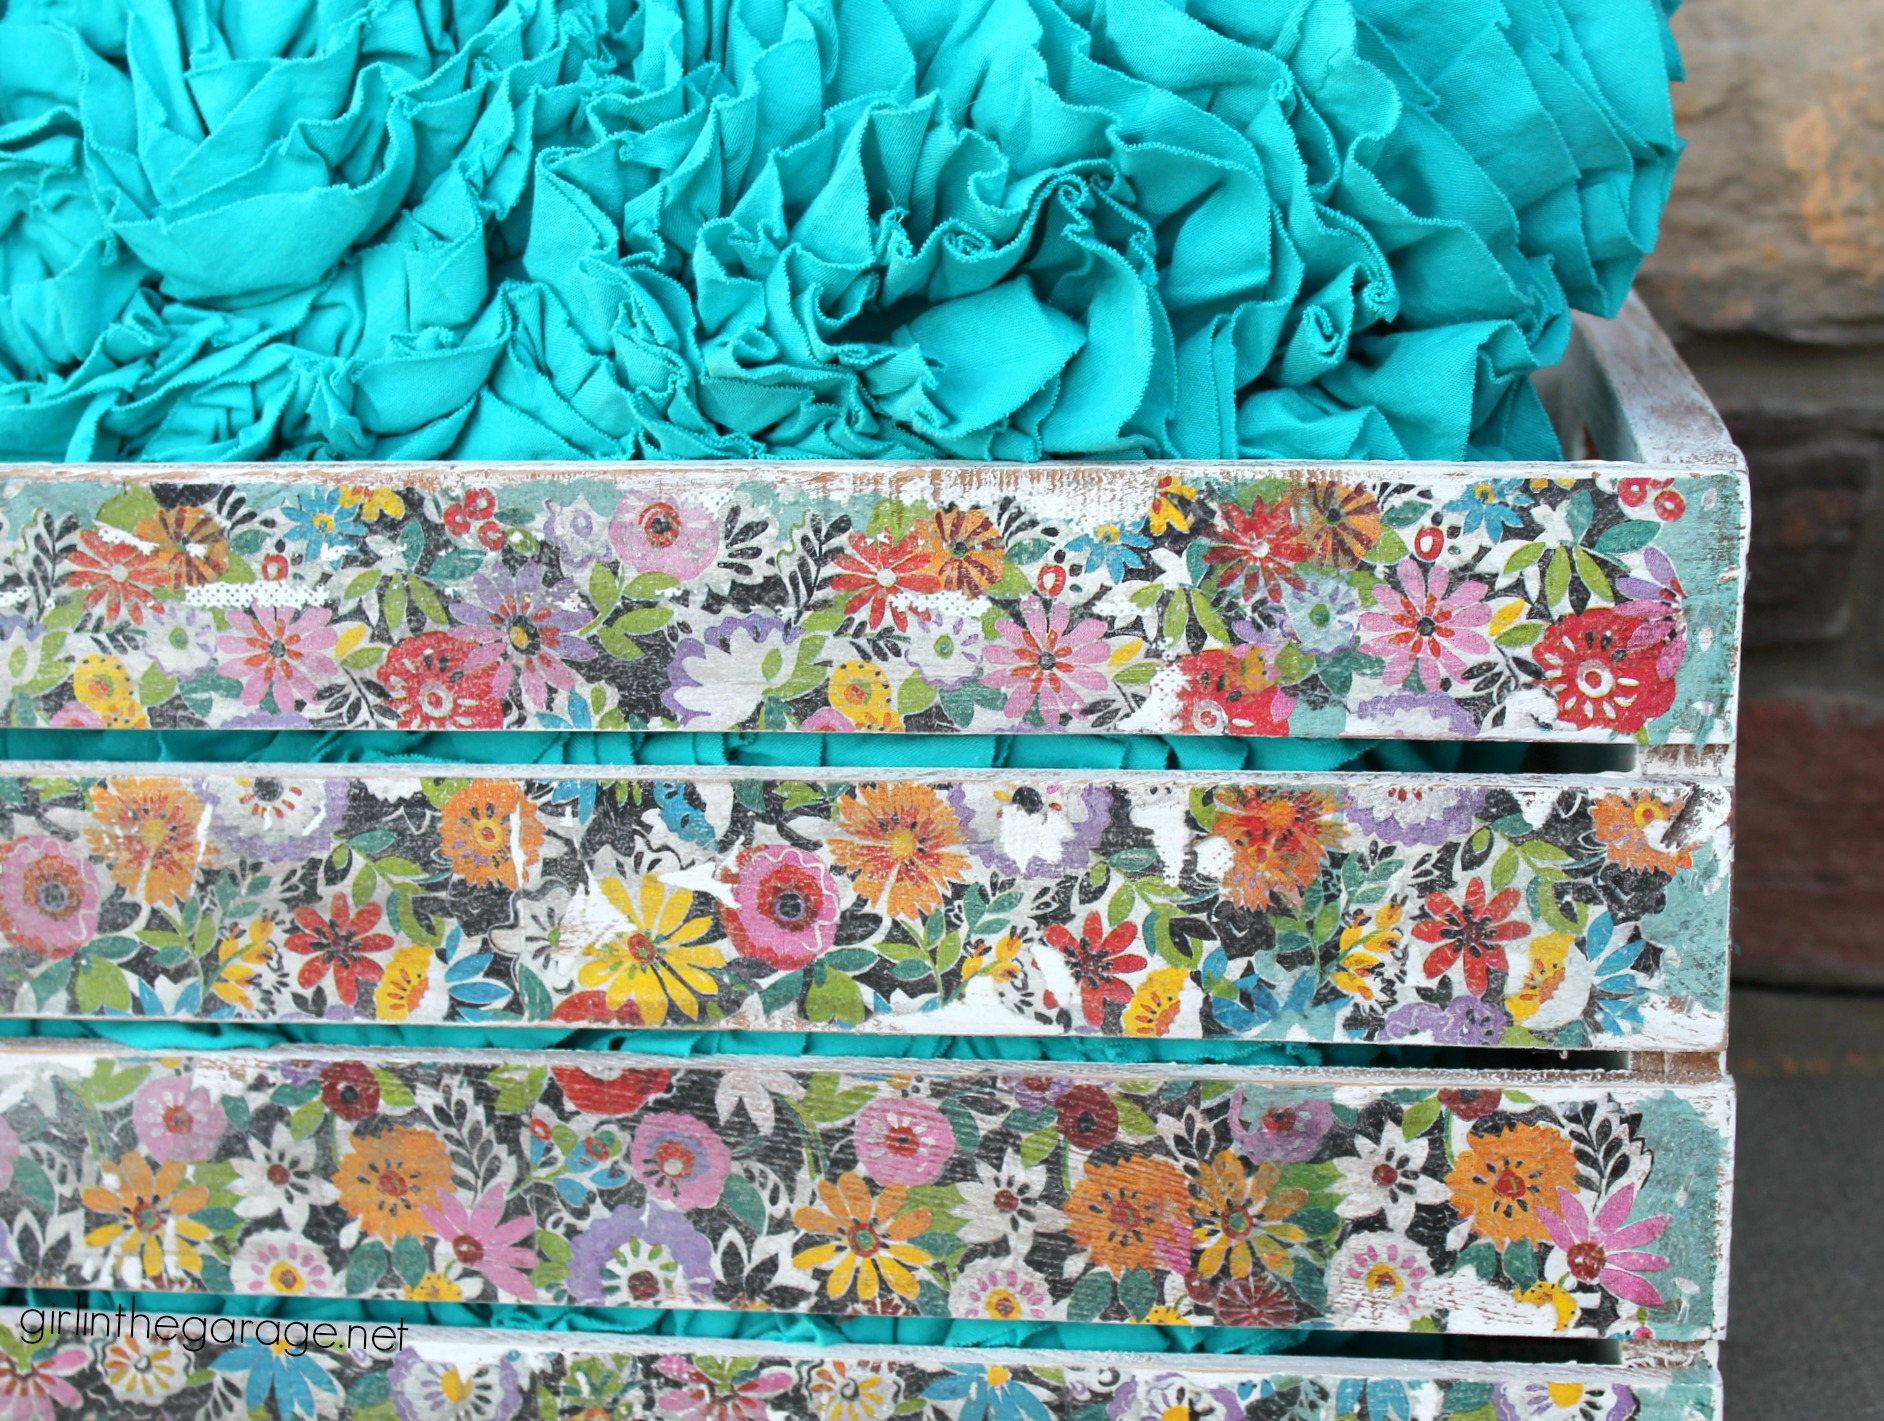 Decoupage Napkins - Upcycled Wooden Crate - DIY Makeover - girlinthegarage.net